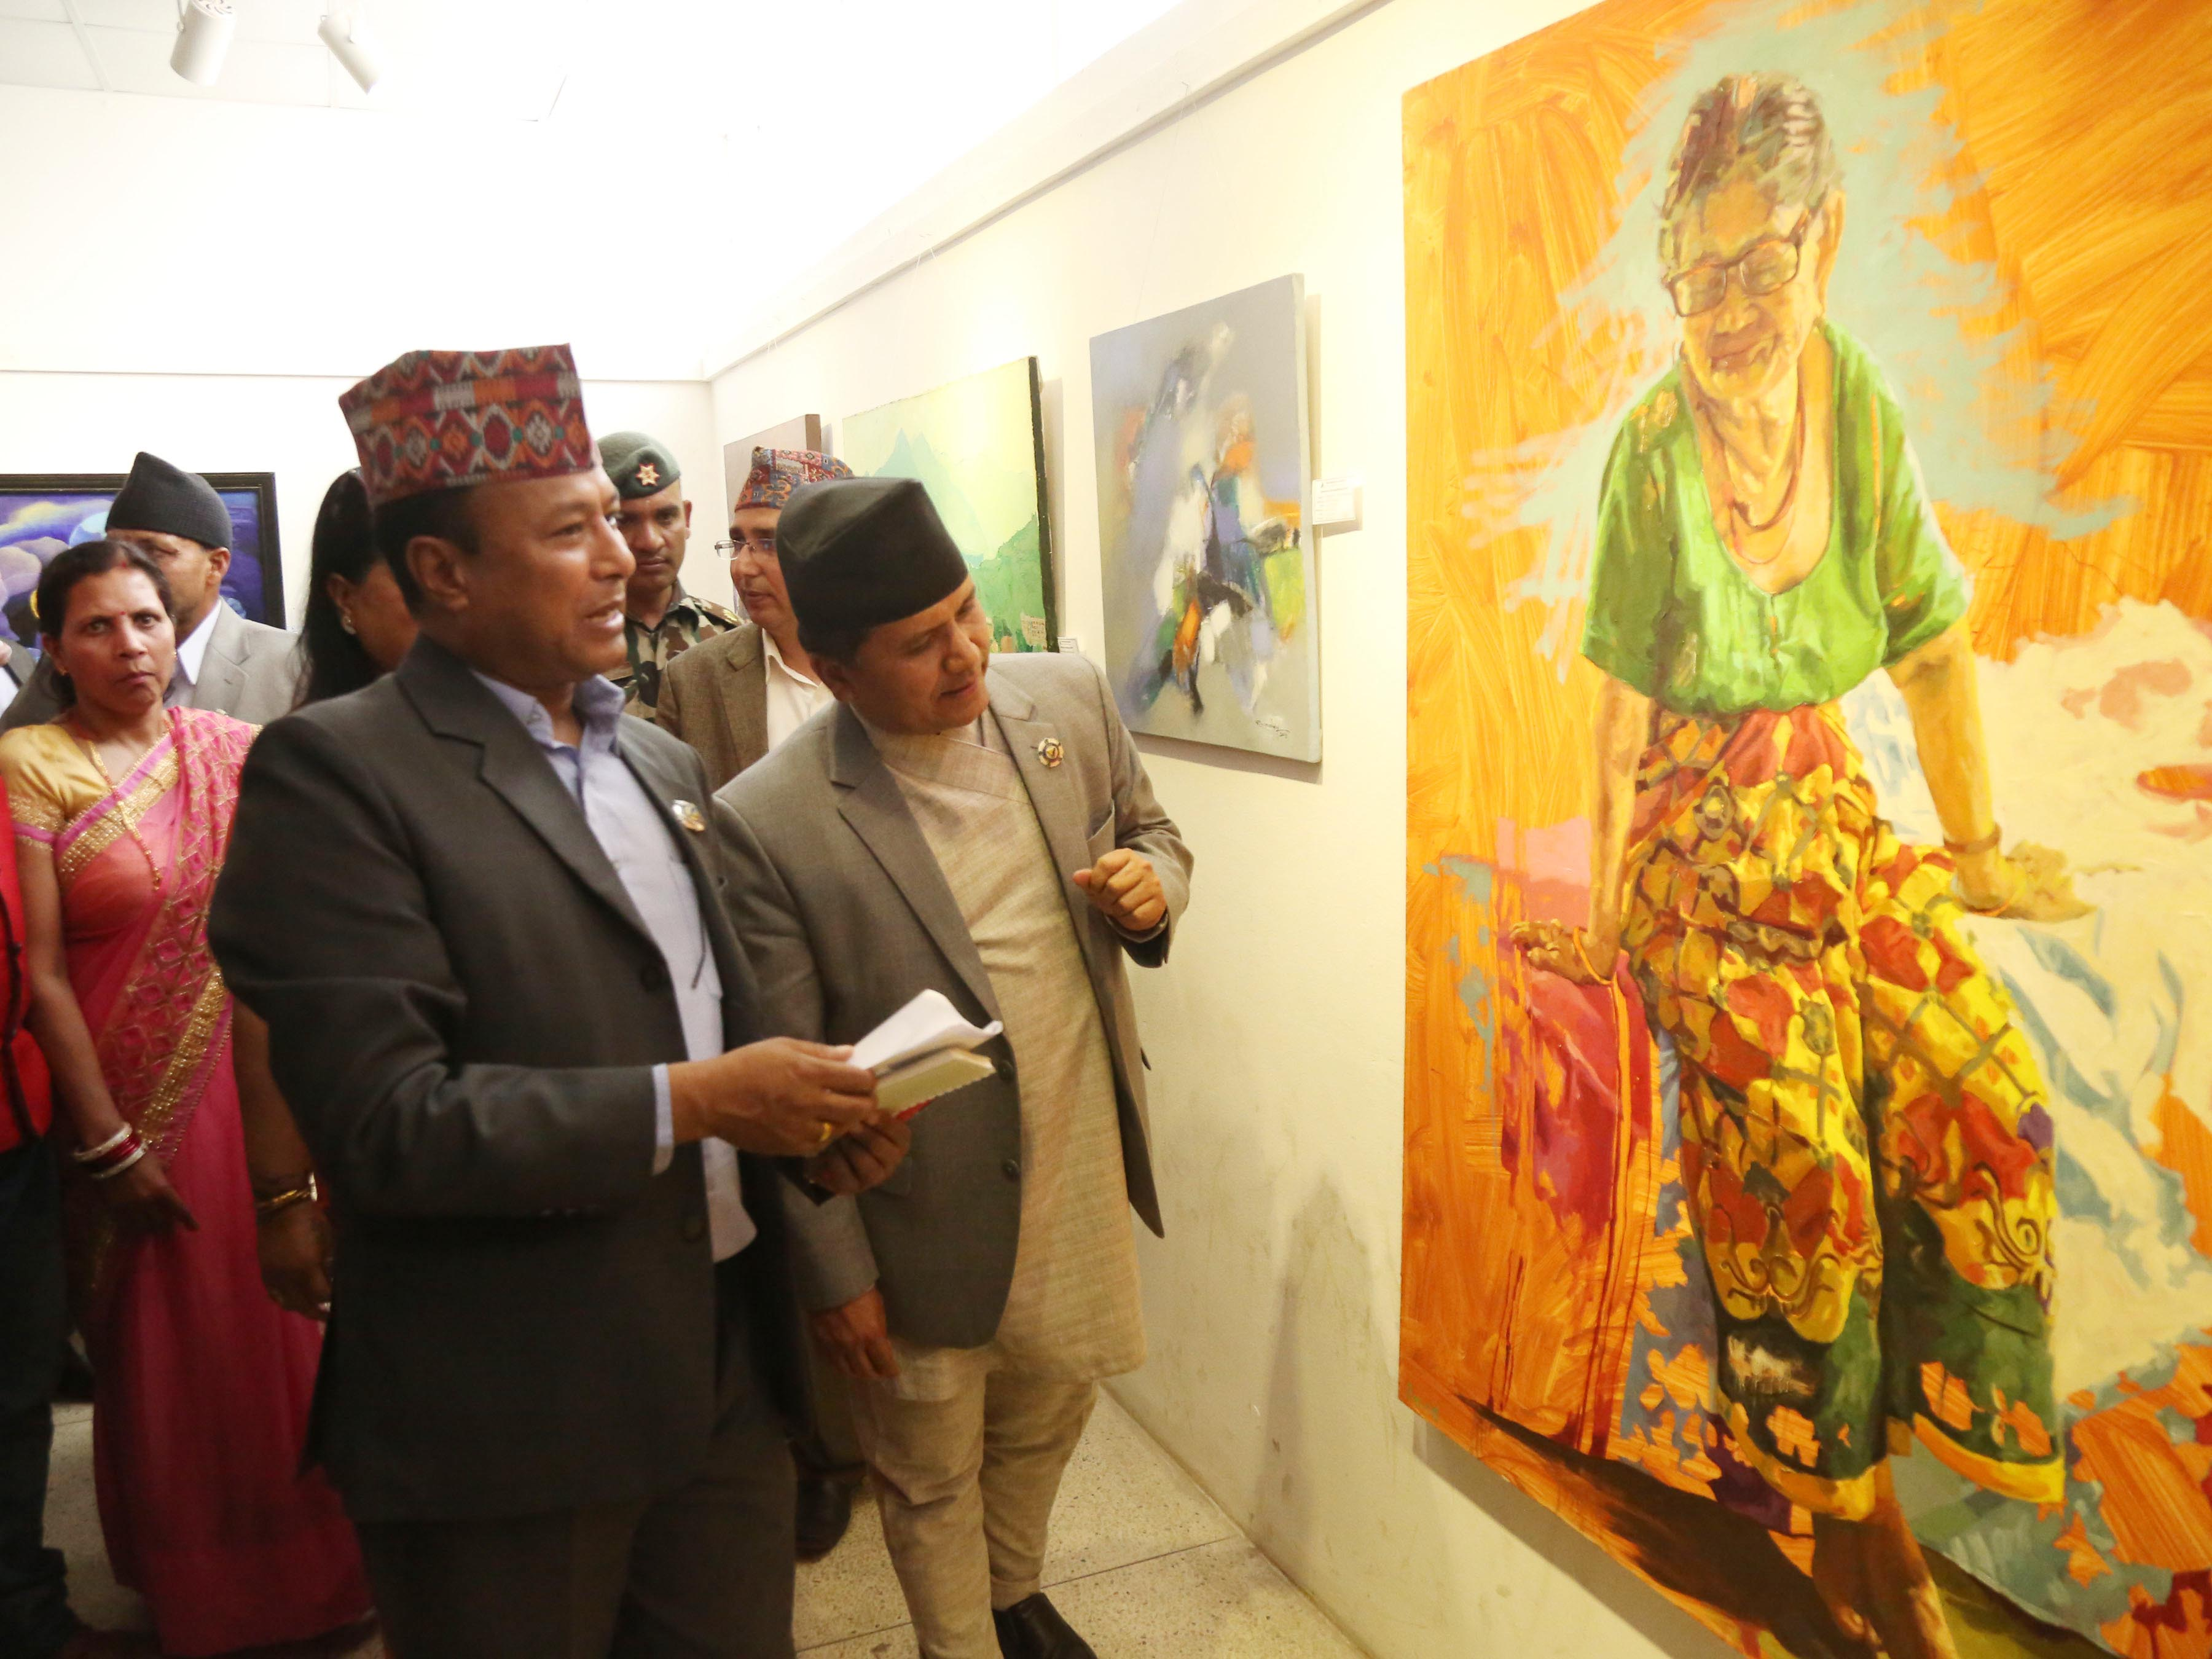 Minister for Culture, Tourism and Civil Aviation Rabindra Adhikari looking at a painting at an art nexhibition, in Kathmandu, on Wednesday, April 18, 2018. Photo: RSS